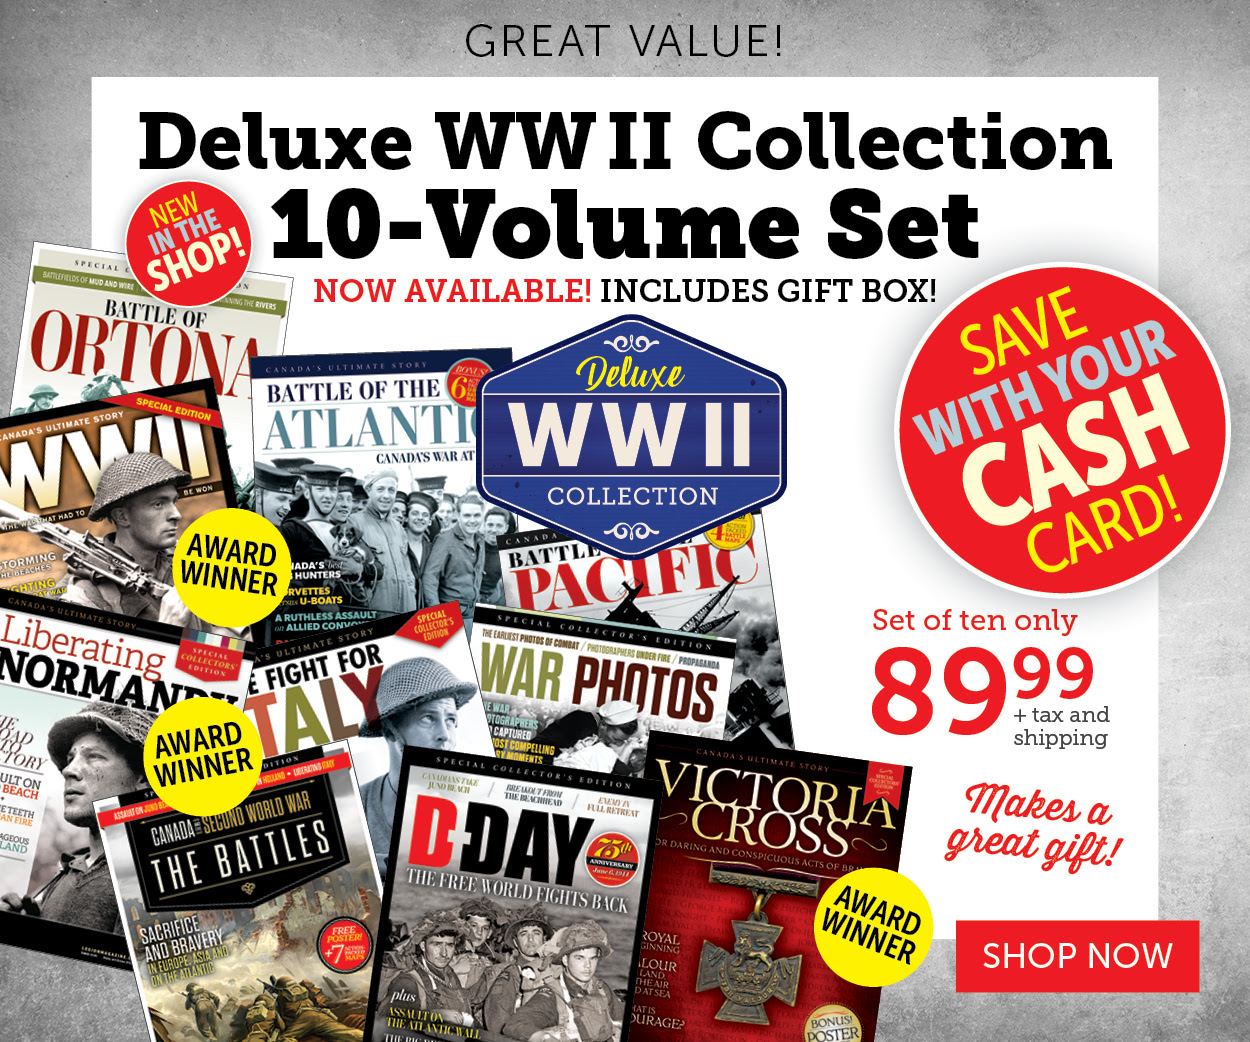 Deluxe WWII Collection 10-Volume Set